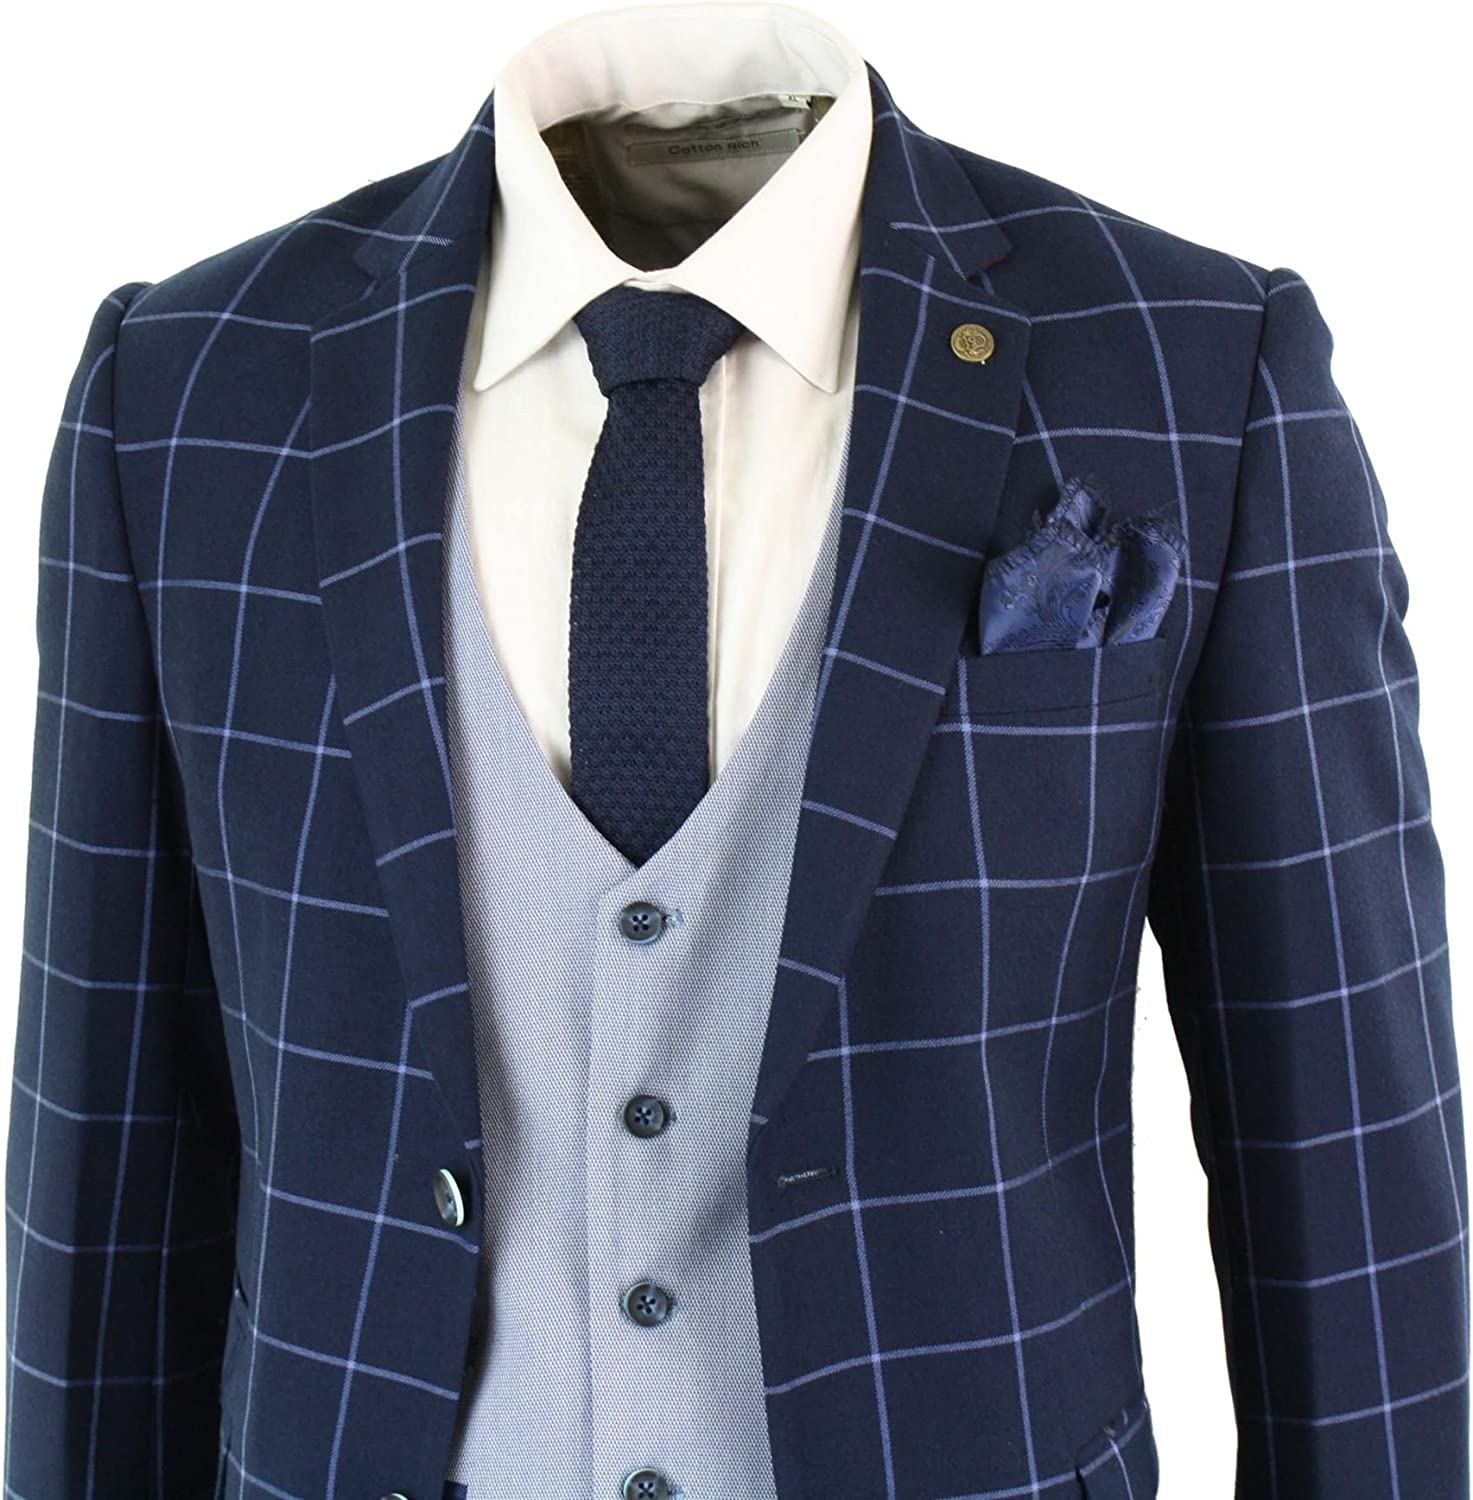 Mens Blue Navy 3 Piece Marc Darcy Suit Check Tailored Fit Complete Wedding Prom